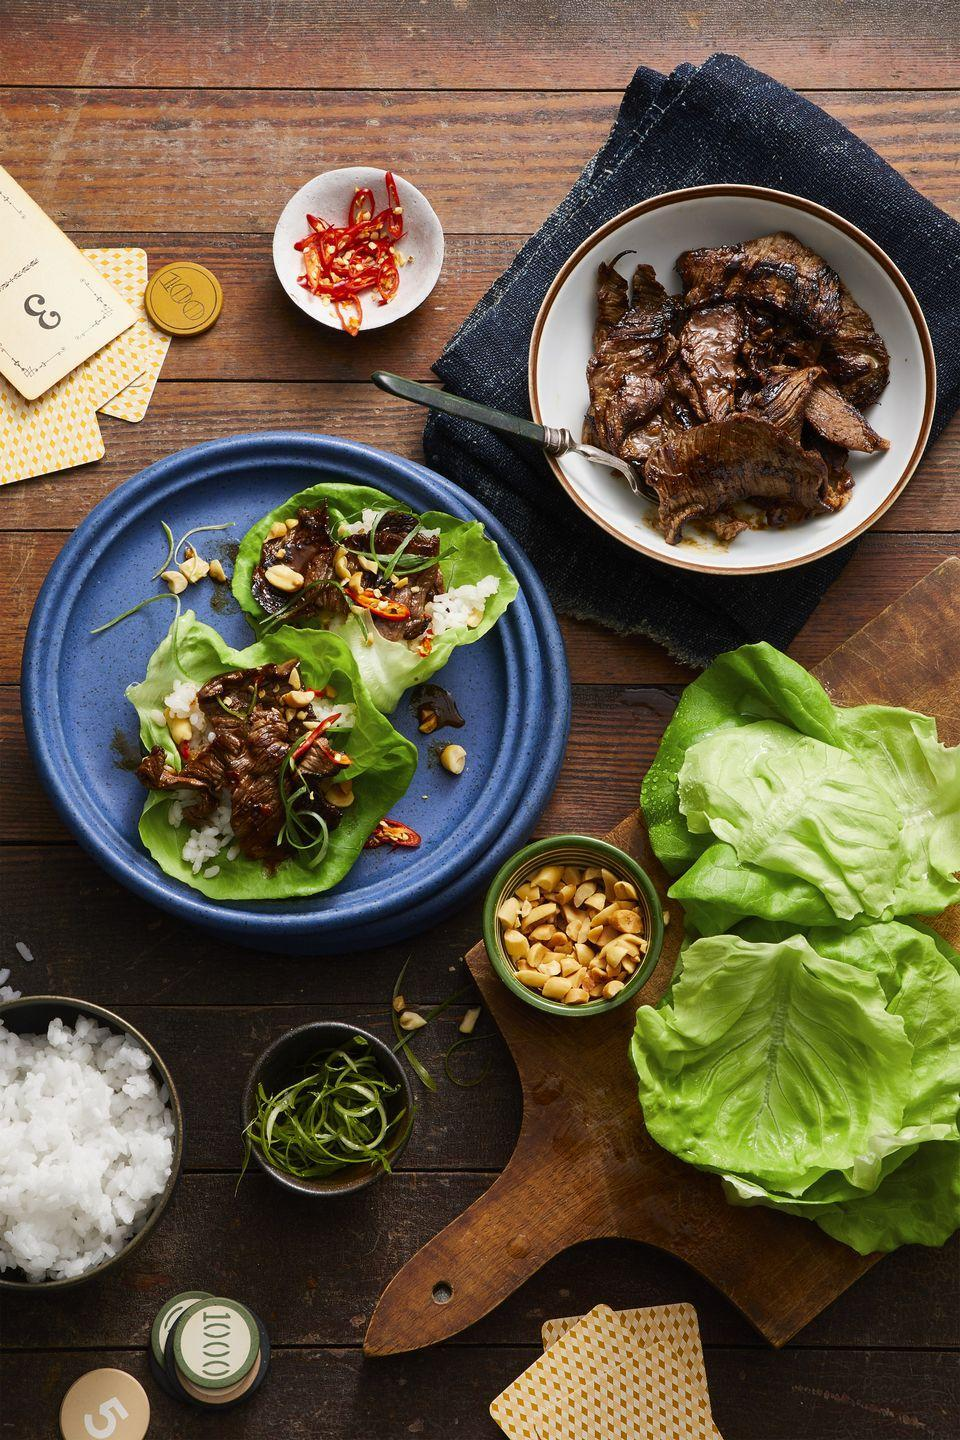 """<p>Here's a sneaky way to get your veggie fix during the big game. </p><p><em><a href=""""https://www.goodhousekeeping.com/food-recipes/easy/a47669/korean-pineapple-beef-lettuce-wraps-recipe/"""" rel=""""nofollow noopener"""" target=""""_blank"""" data-ylk=""""slk:Get the recipe for Korean Pineapple Beef Lettuce Wraps »"""" class=""""link rapid-noclick-resp"""">Get the recipe for Korean Pineapple Beef Lettuce Wraps » </a></em></p>"""